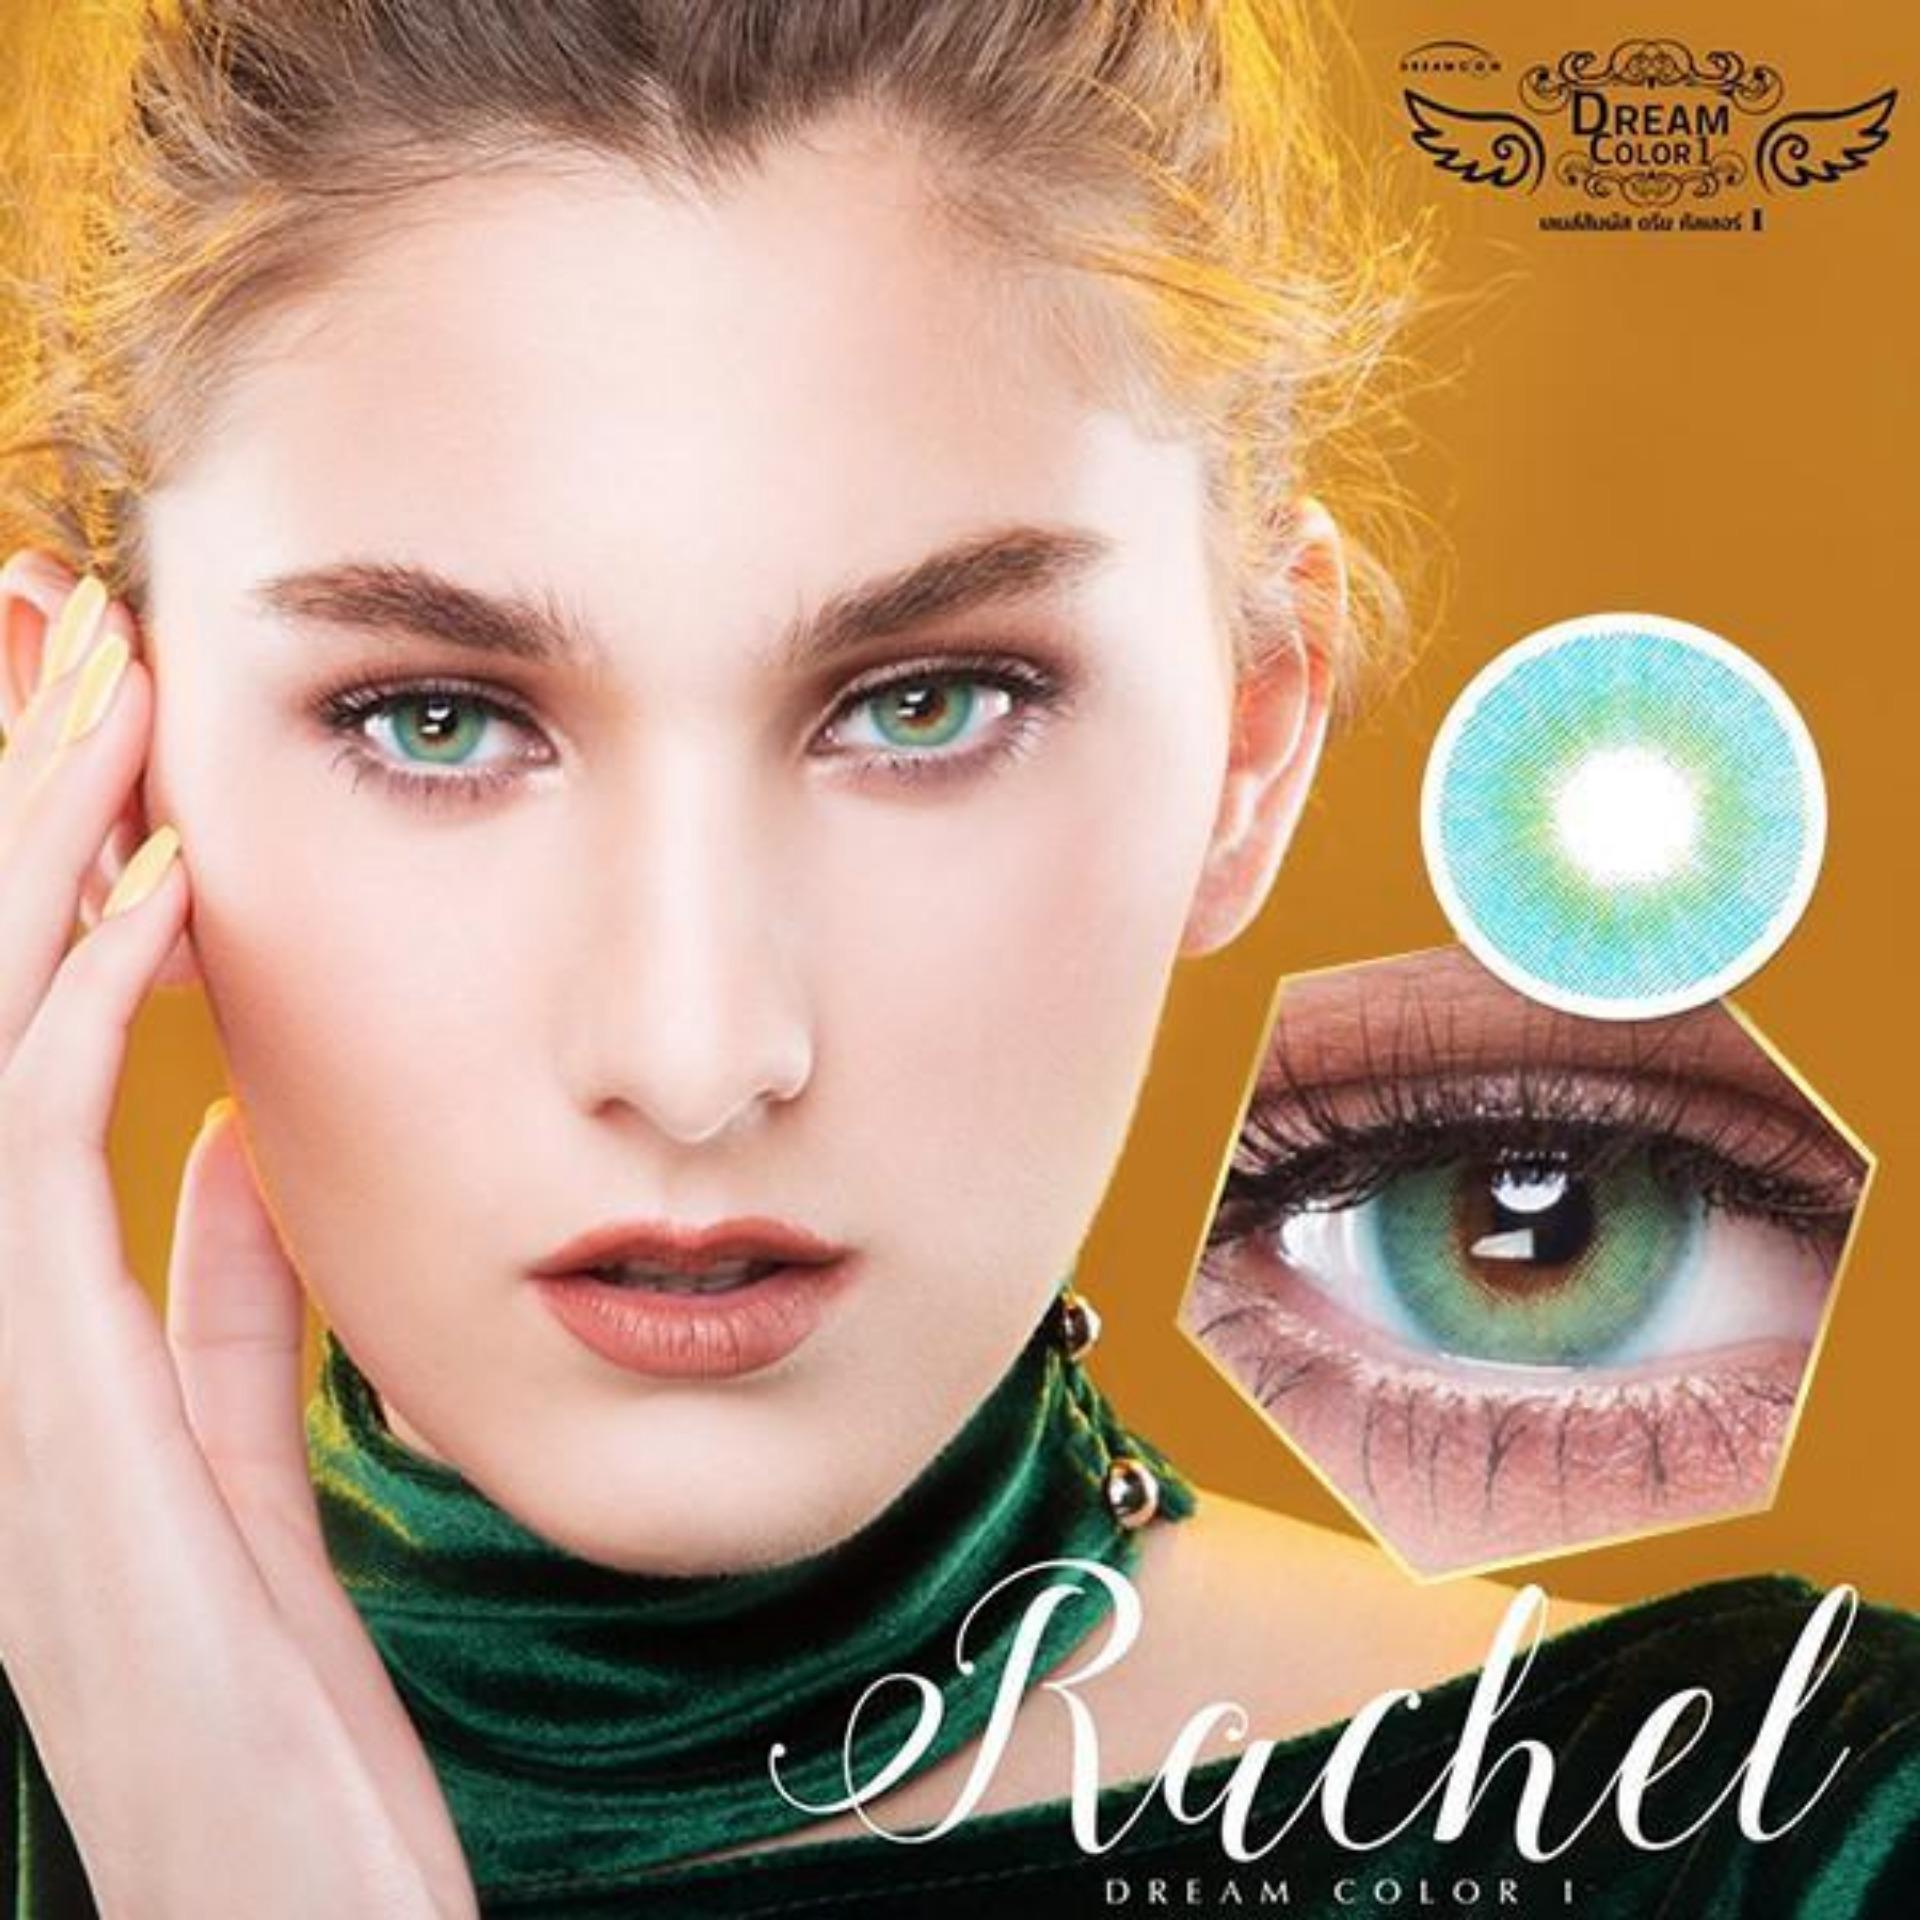 Rachel Softlens Dream Color + Free Lenscase - Blue